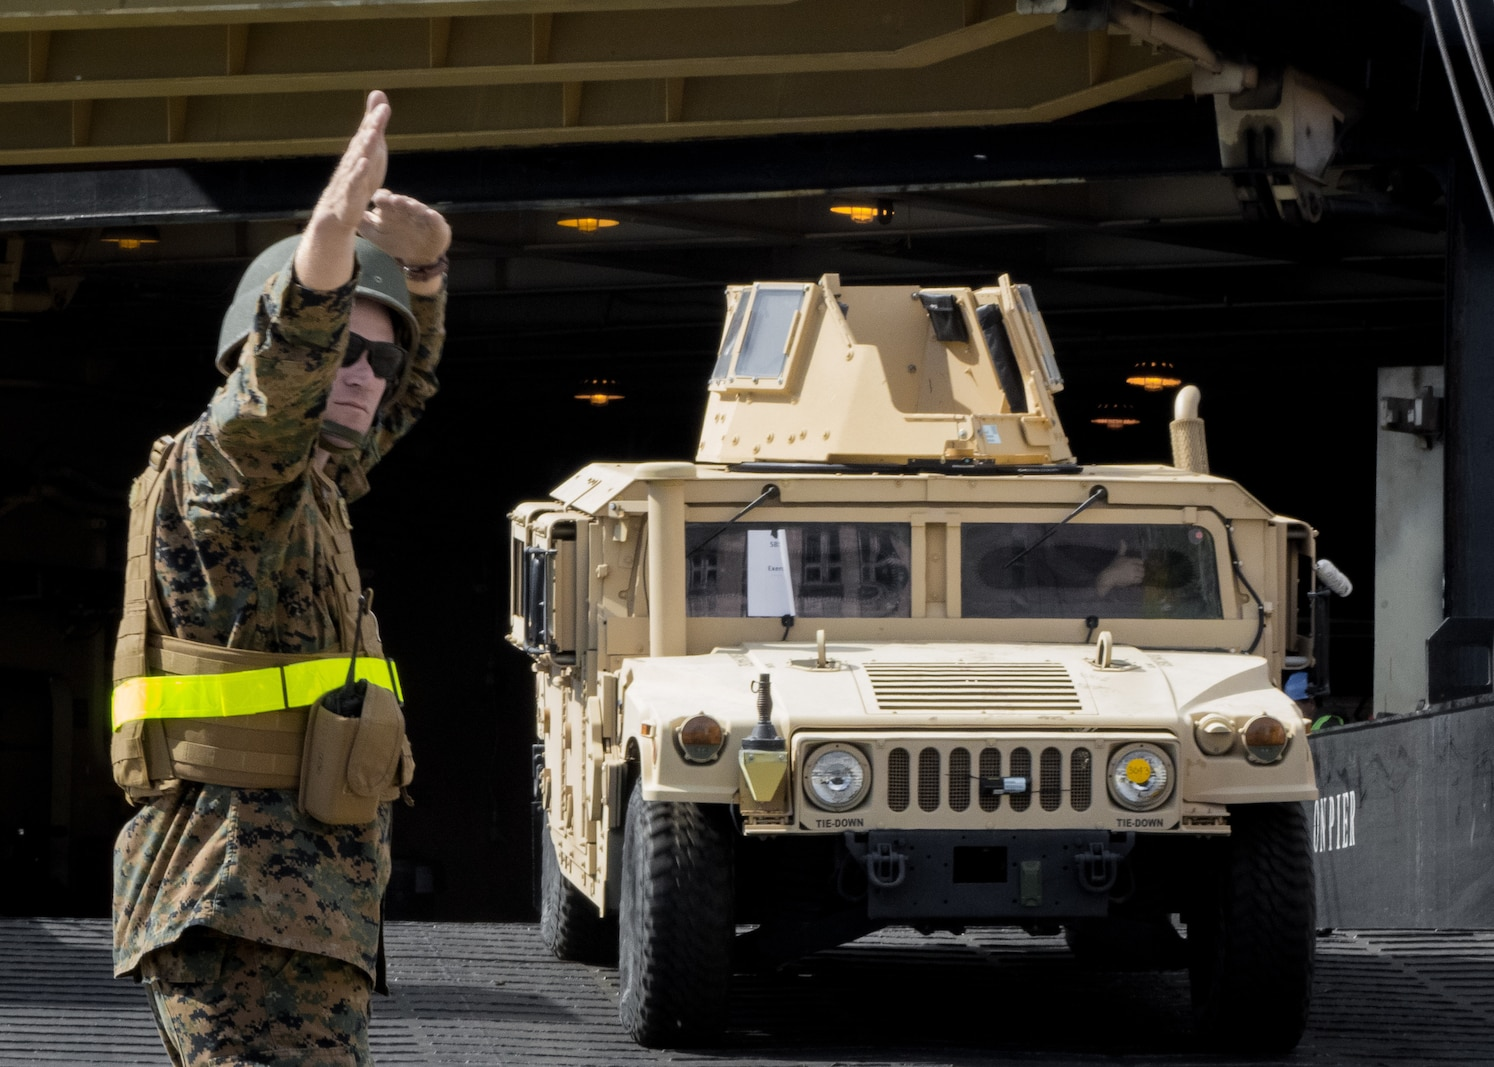 Cpl. Bradley Graczyk, combat engineer with Combat Logistics Regiment 45 directs a Humvee offloading from USNS Sgt. William R. Button during a maritime prepositioning force offload at the port of Klaipeda, Lithuania, May 23, 2018.